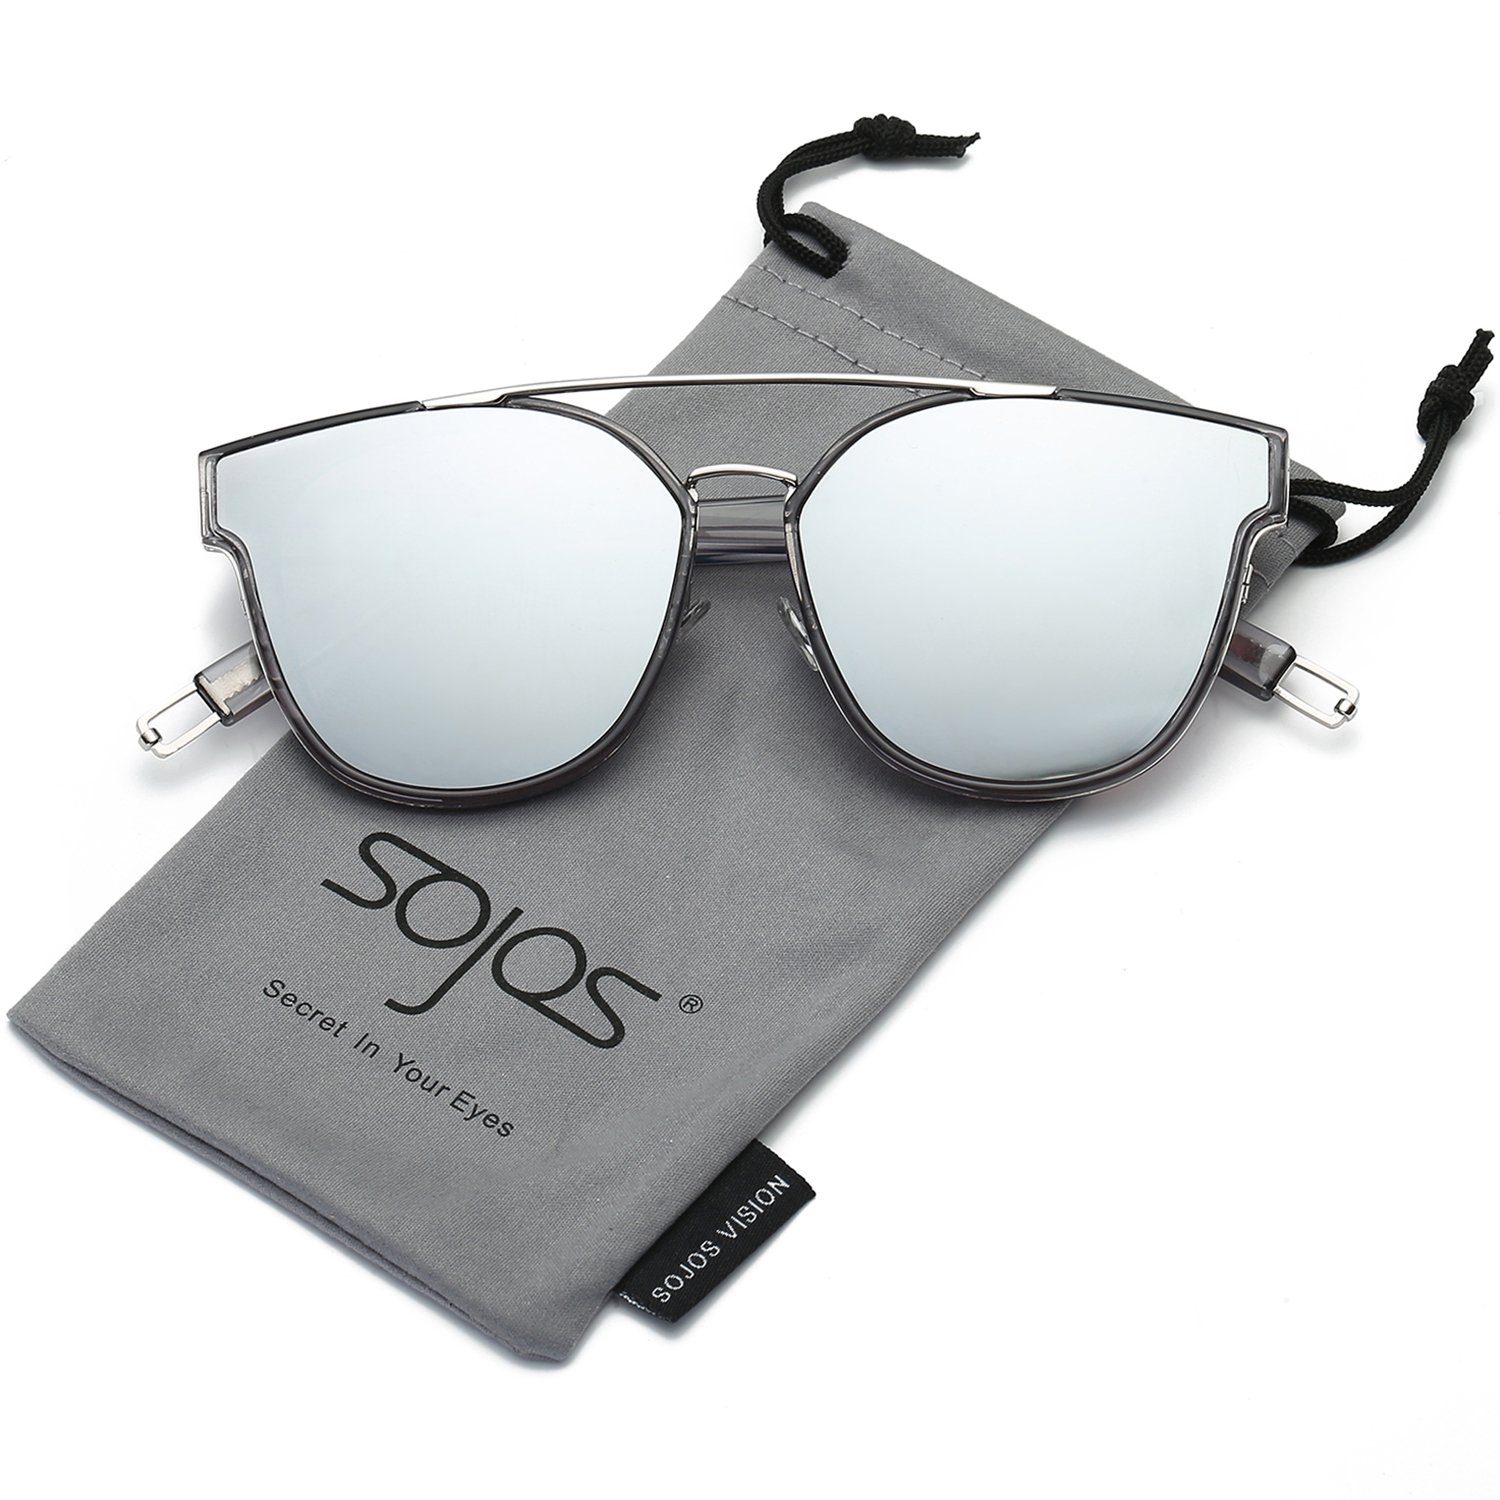 SojoS Classic Square Sunglasses for Women Men Flat Mirrored Lens SJ2038 SJ1008 with Silver Rim/Silver Mirrored Lens